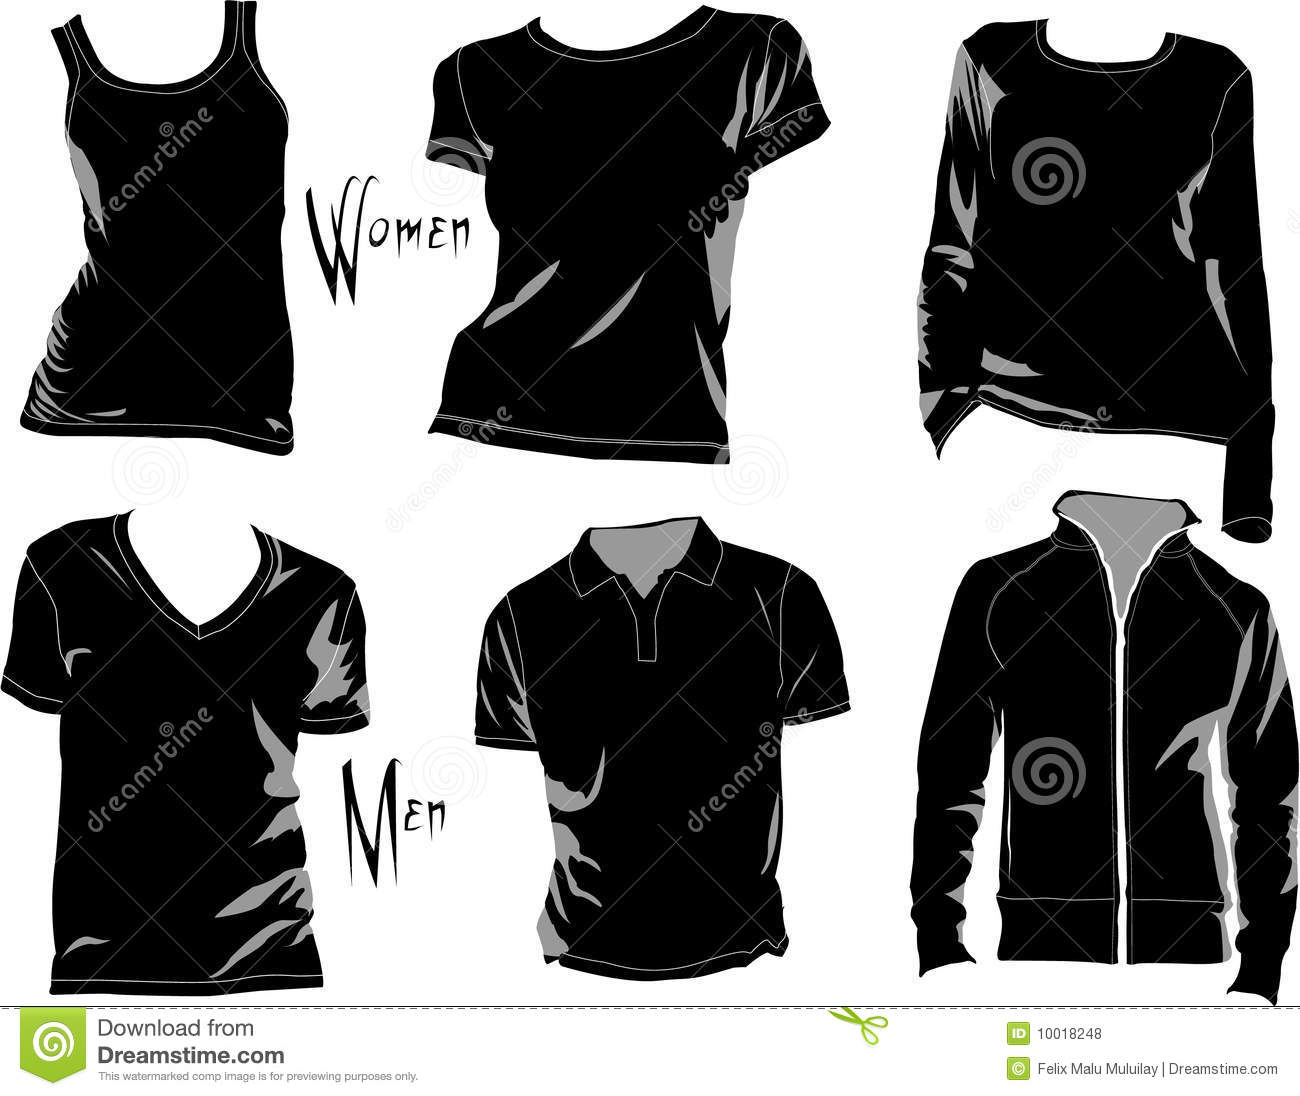 Black t shirt vector free - T Shirt Templates Stock Image Image 9809841